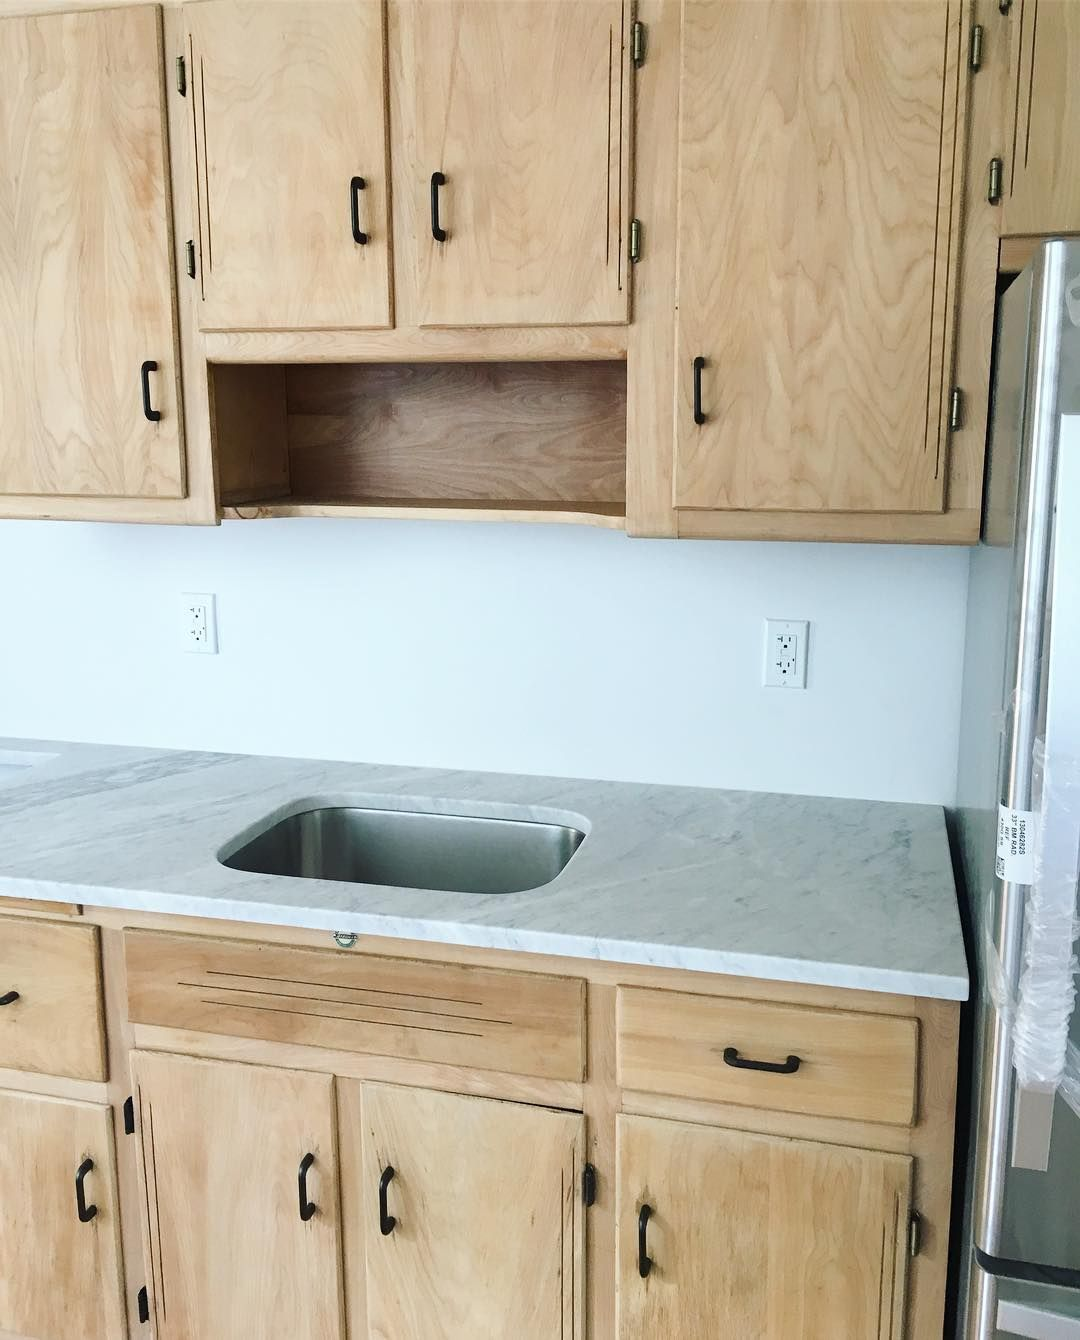 Stripping Kitchen Cabinets Vintage kitchen cabirehab! We stripped and sealed these